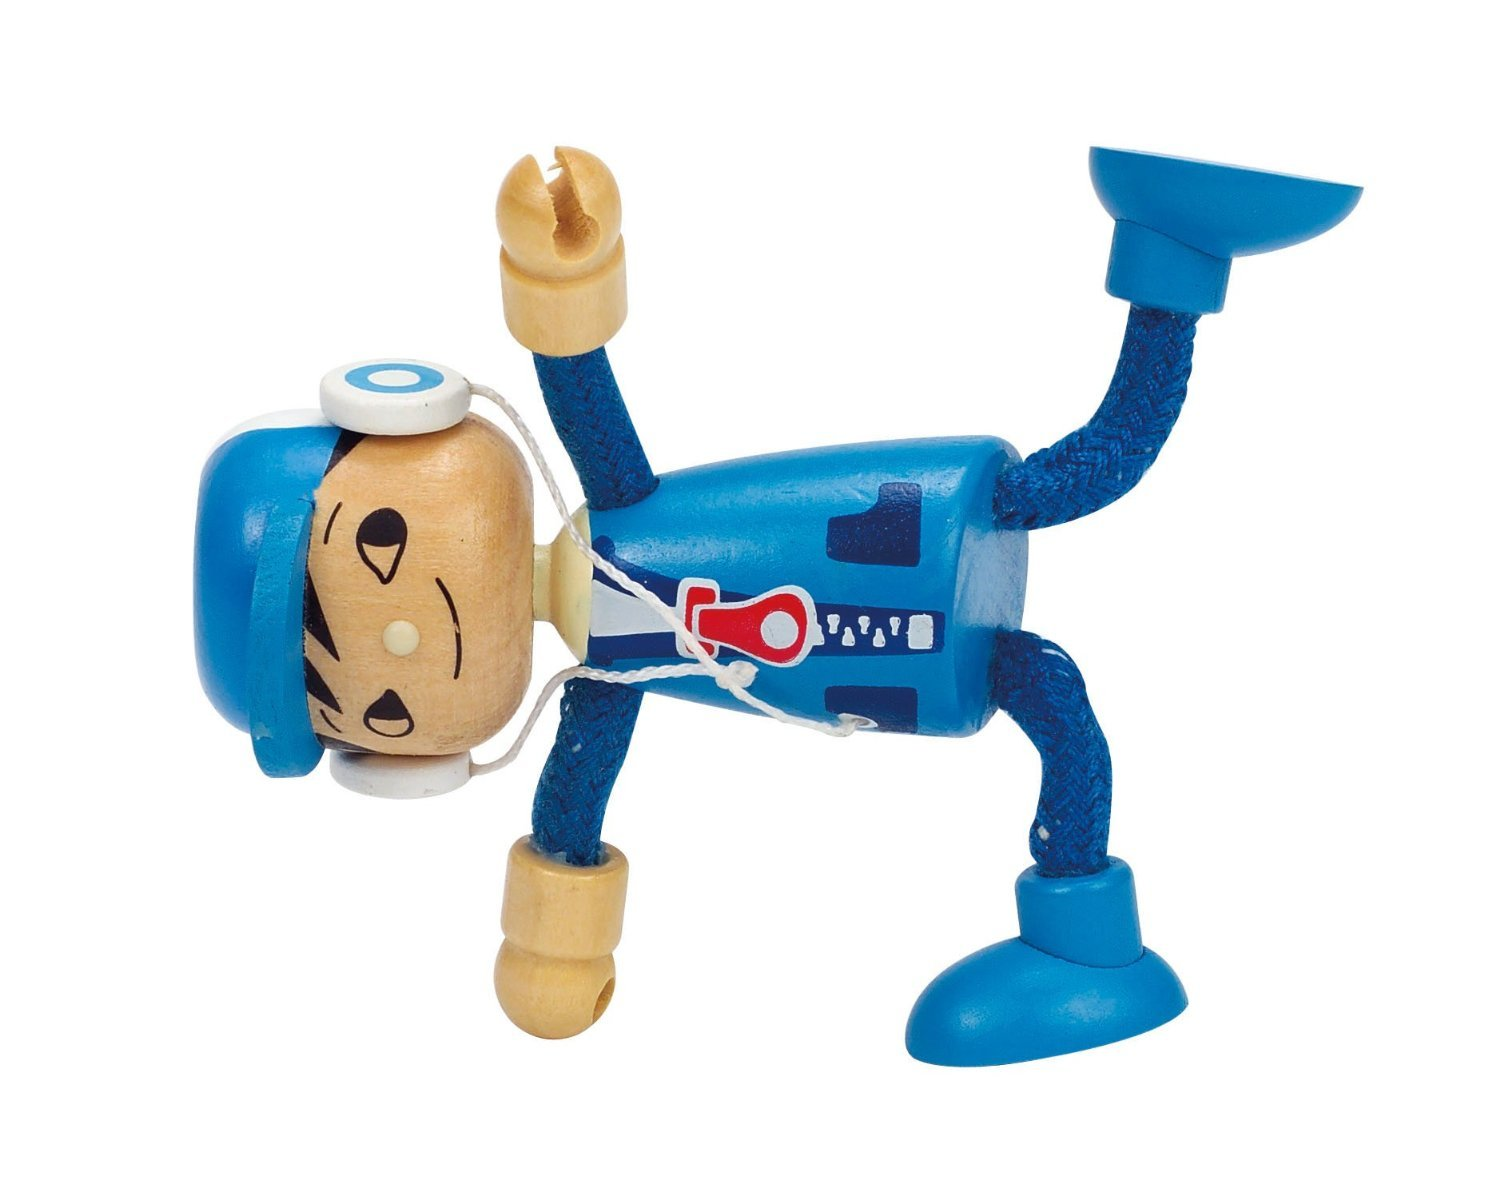 Hape: Son Wooden Doll